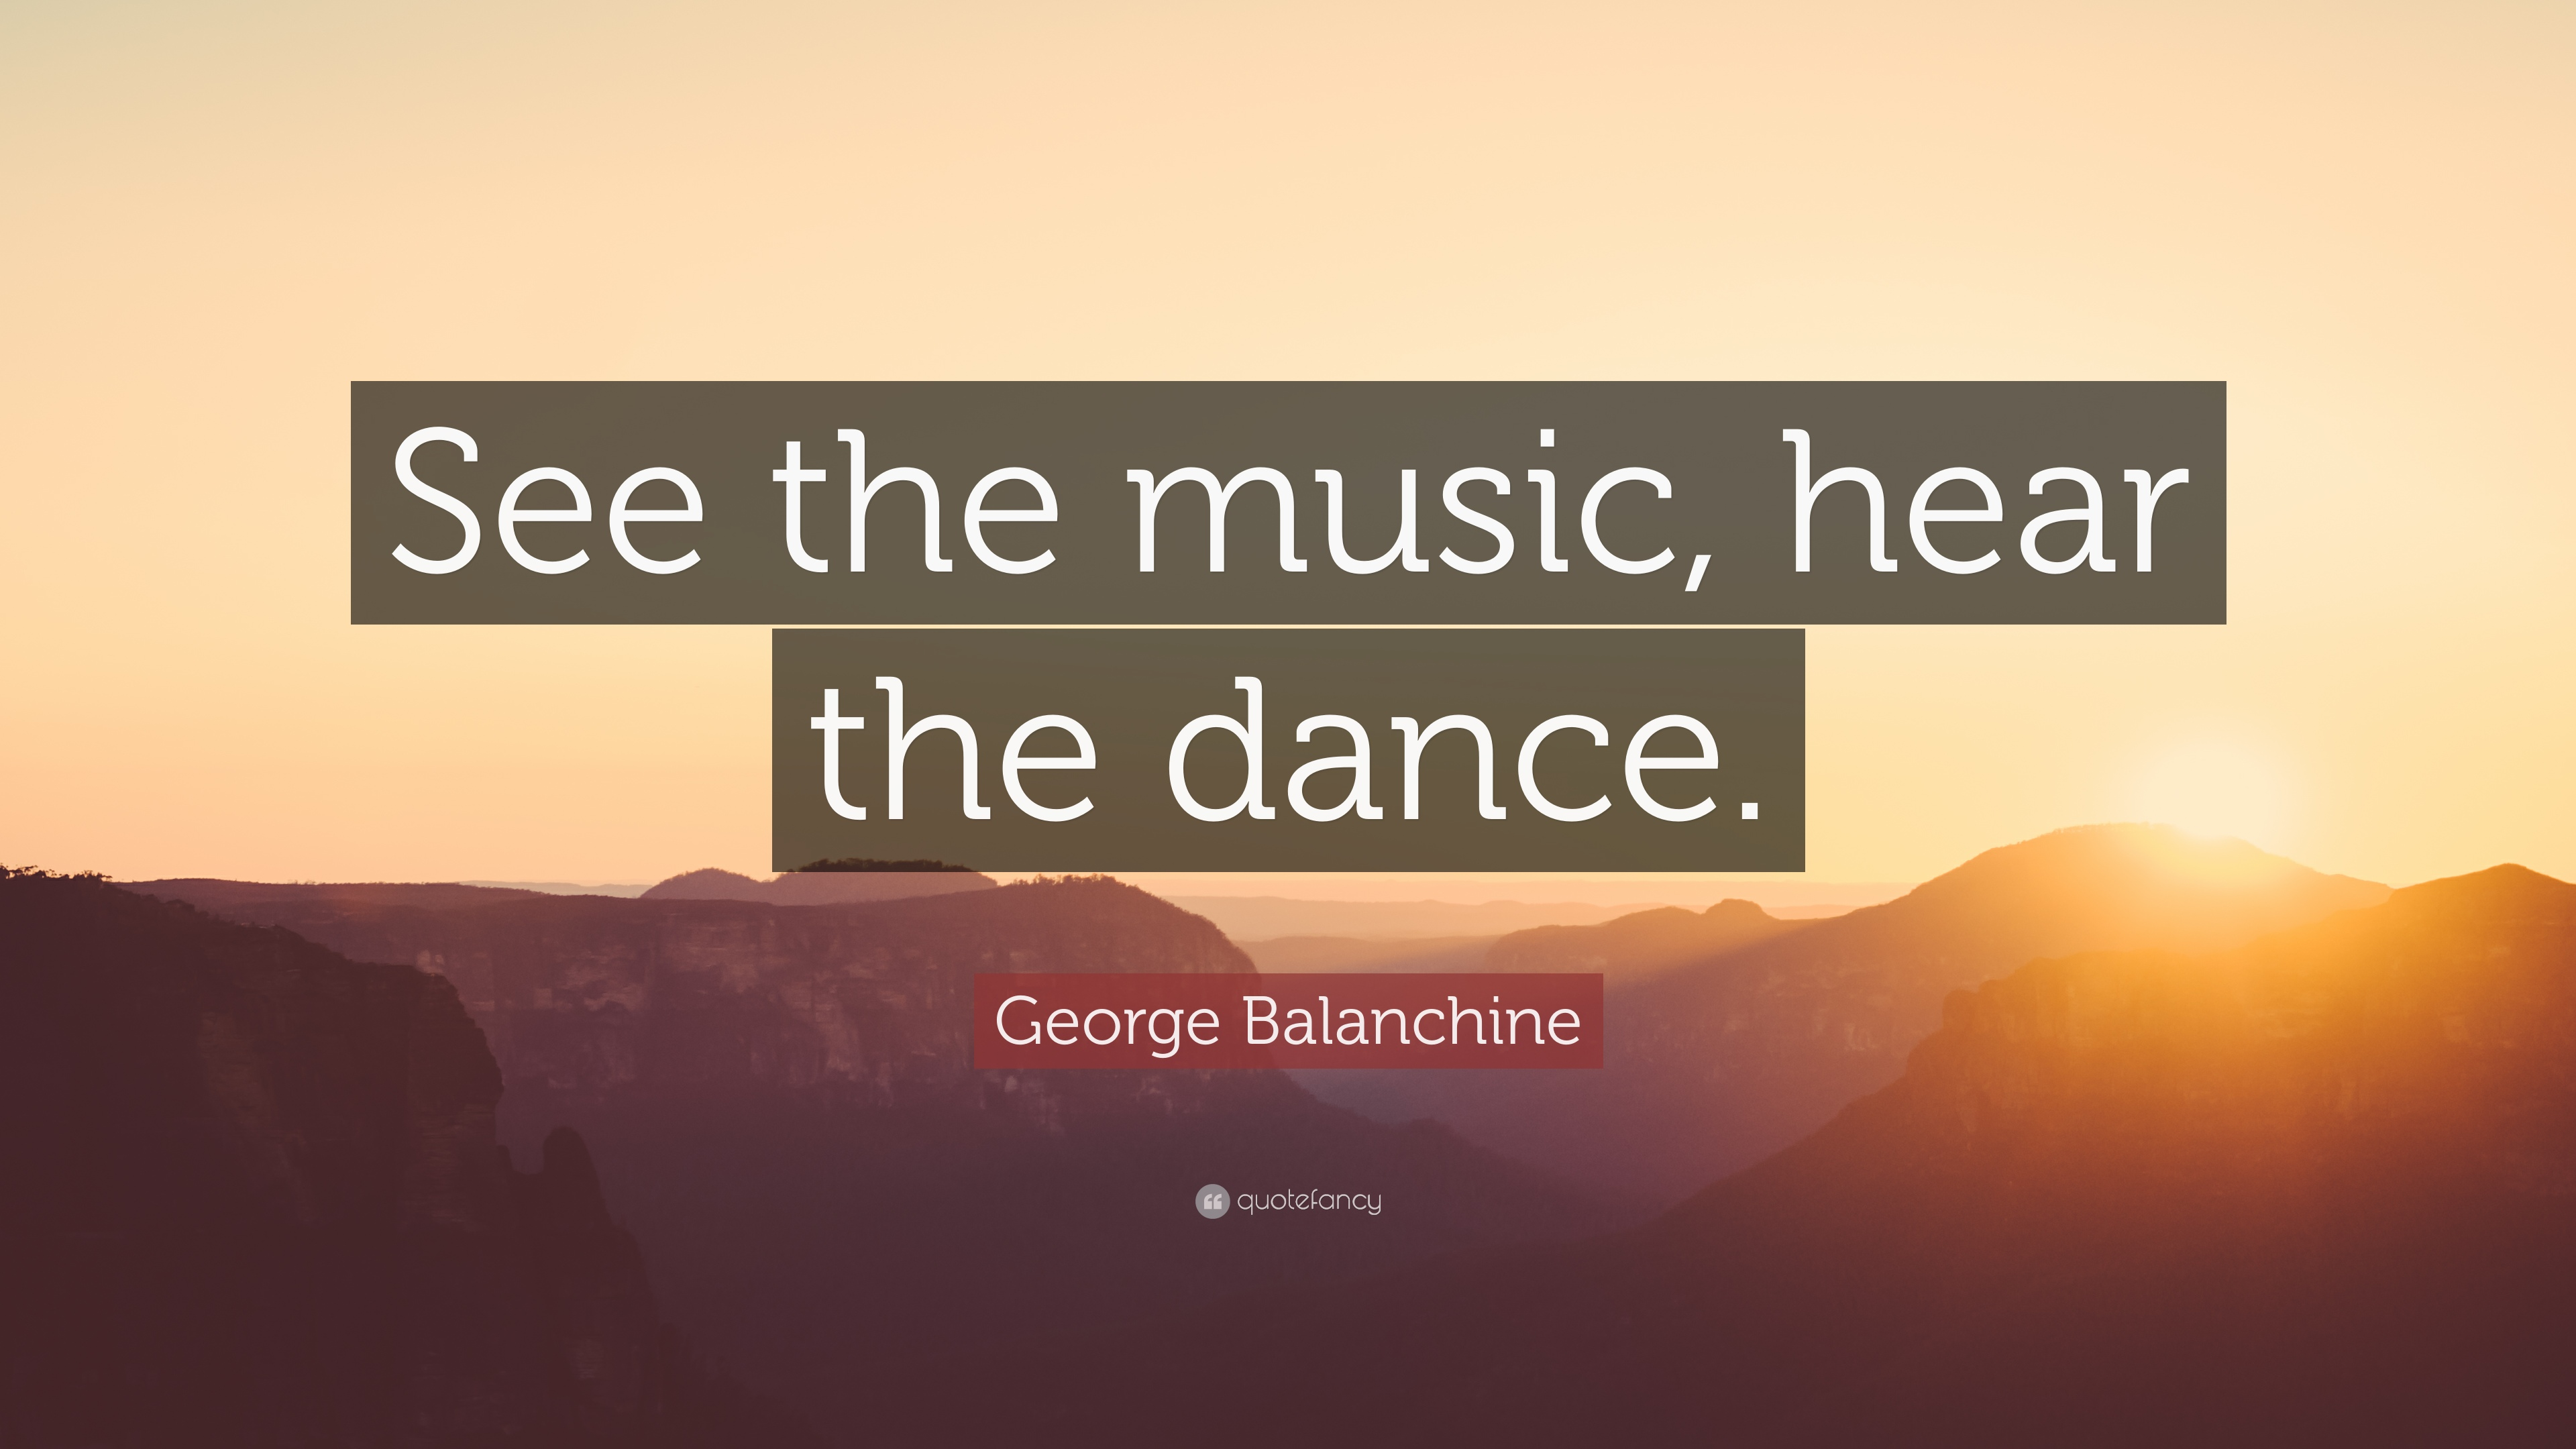 George Balanchine Quotes (30 Wallpapers)